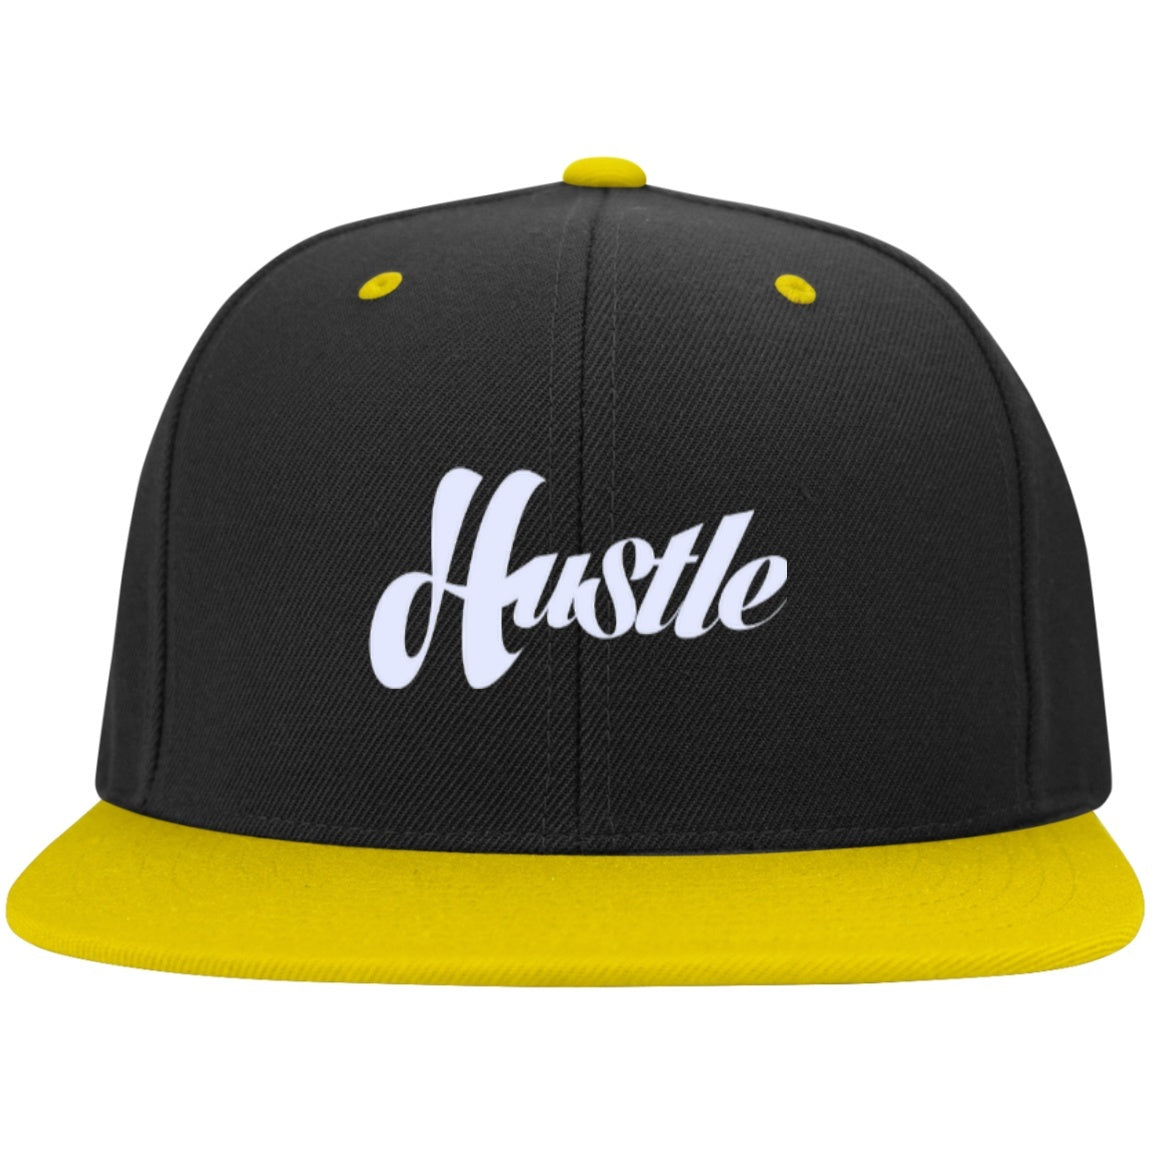 Design your own t-shirt and hats - Hats Hustle Hat Rare Limited Edition